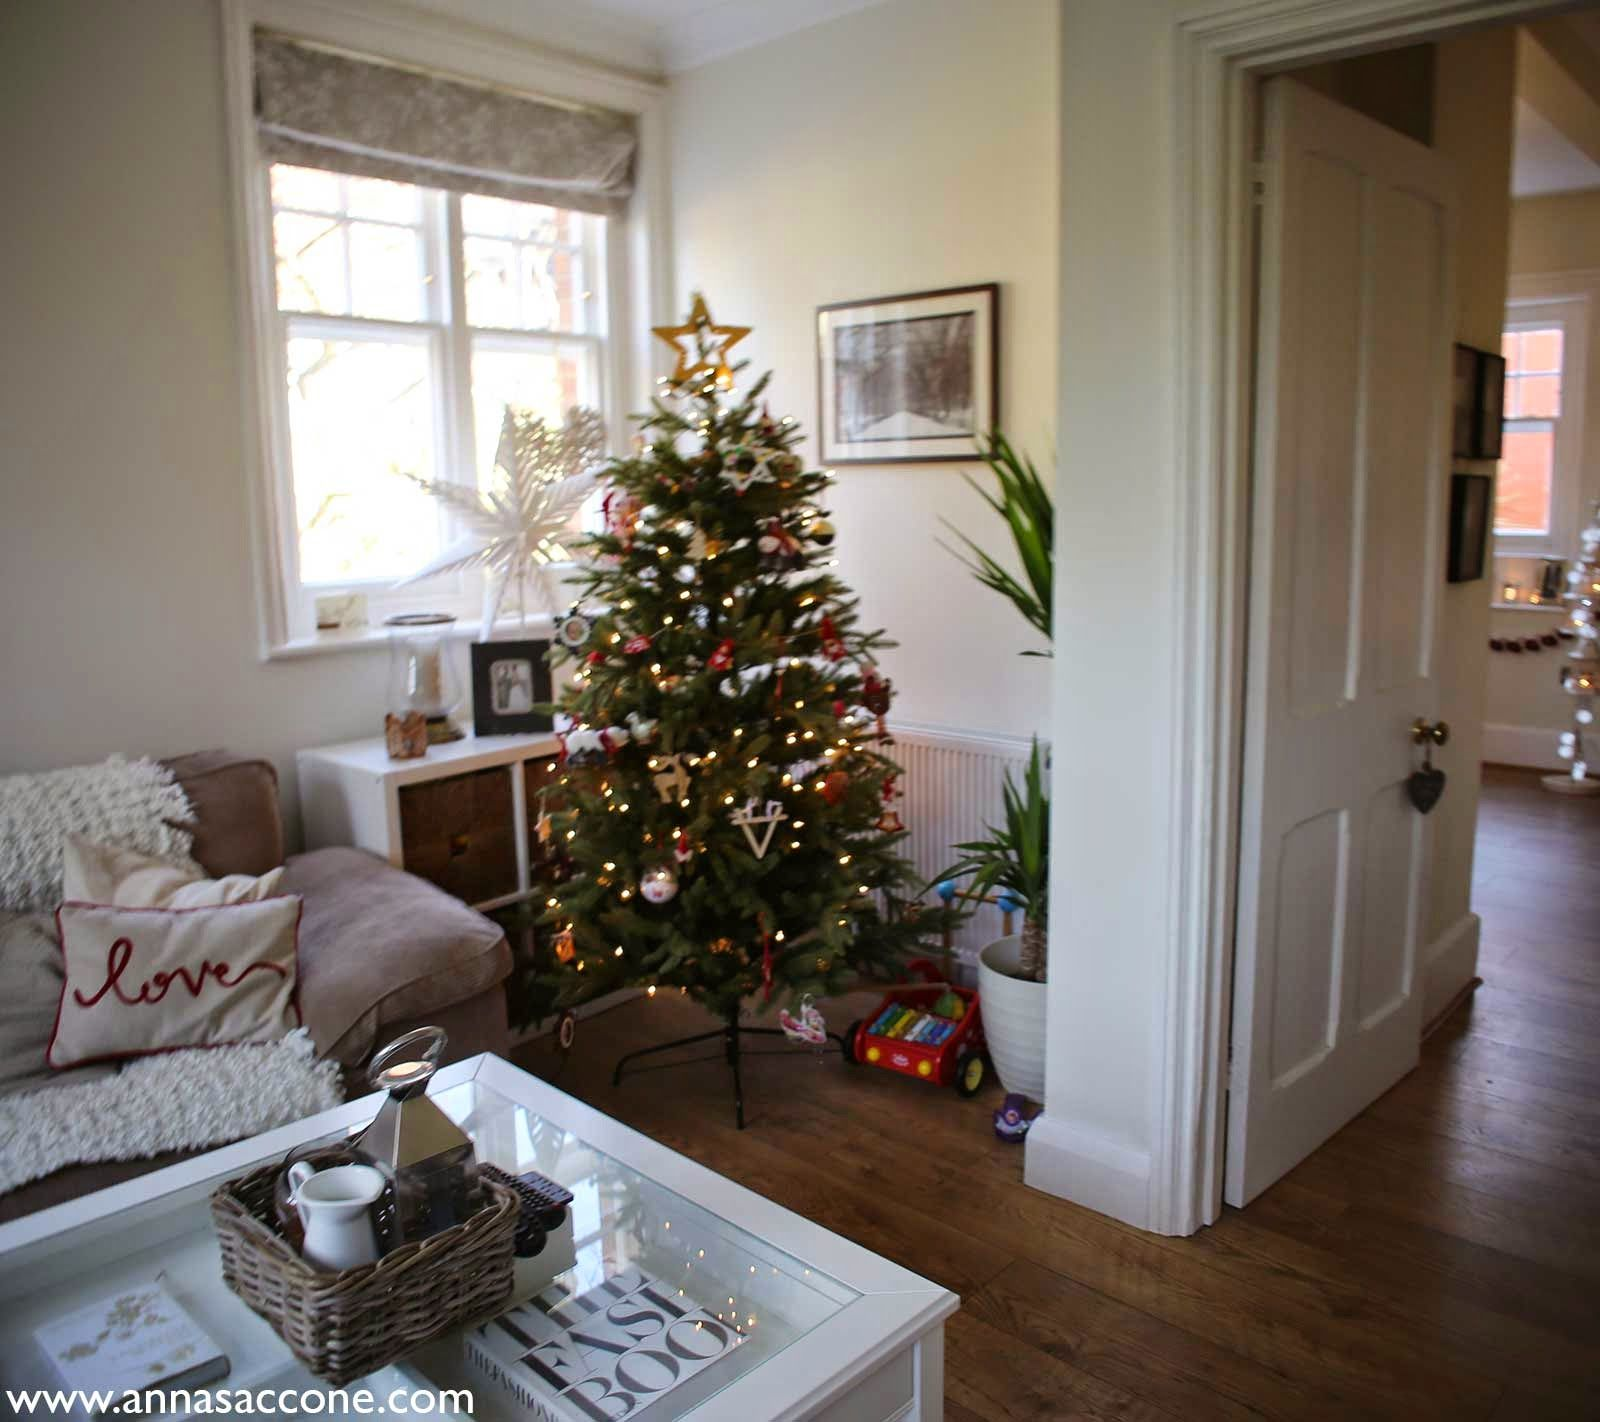 anna saccone: style saturday: christmas home decor (blogmas day 13